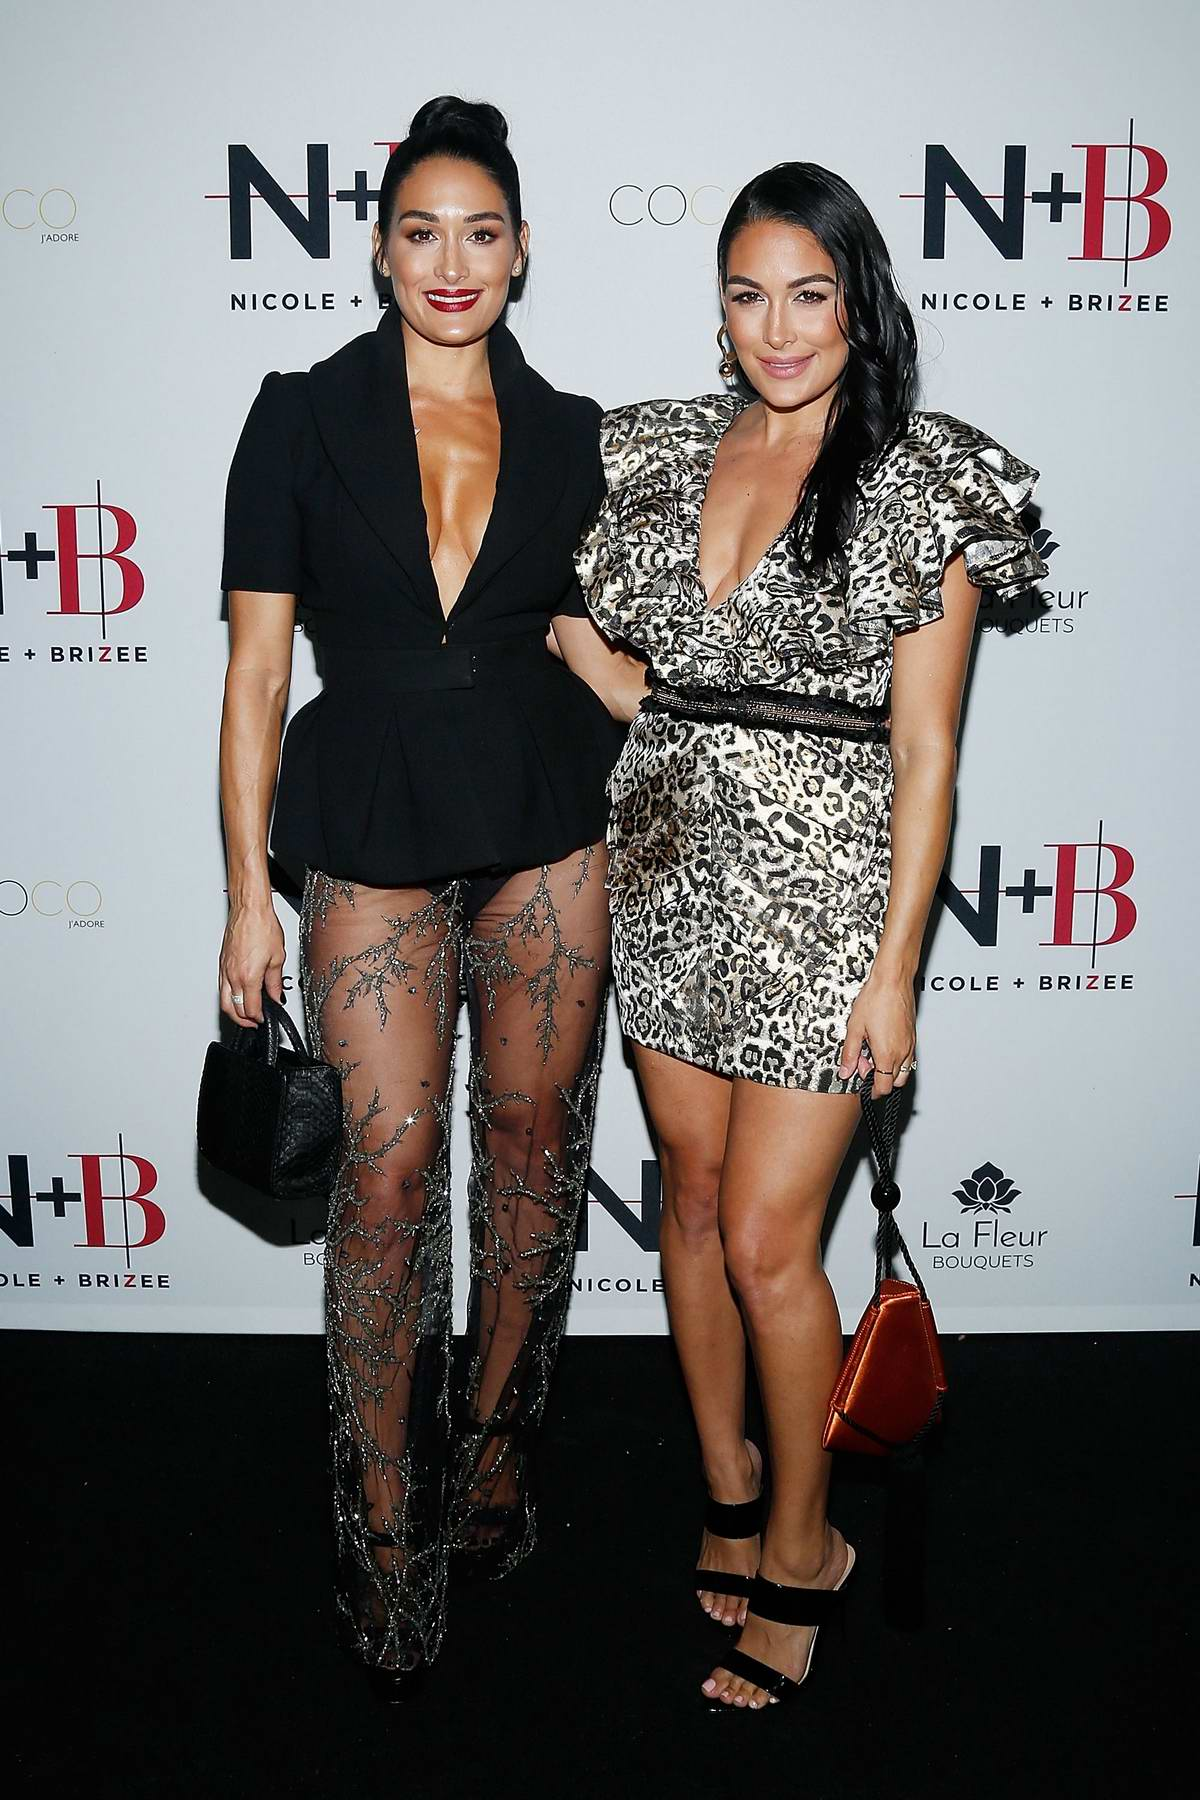 Nikki and Brie Bella attend the launch of their new product line during New York Fashion Week in New York City